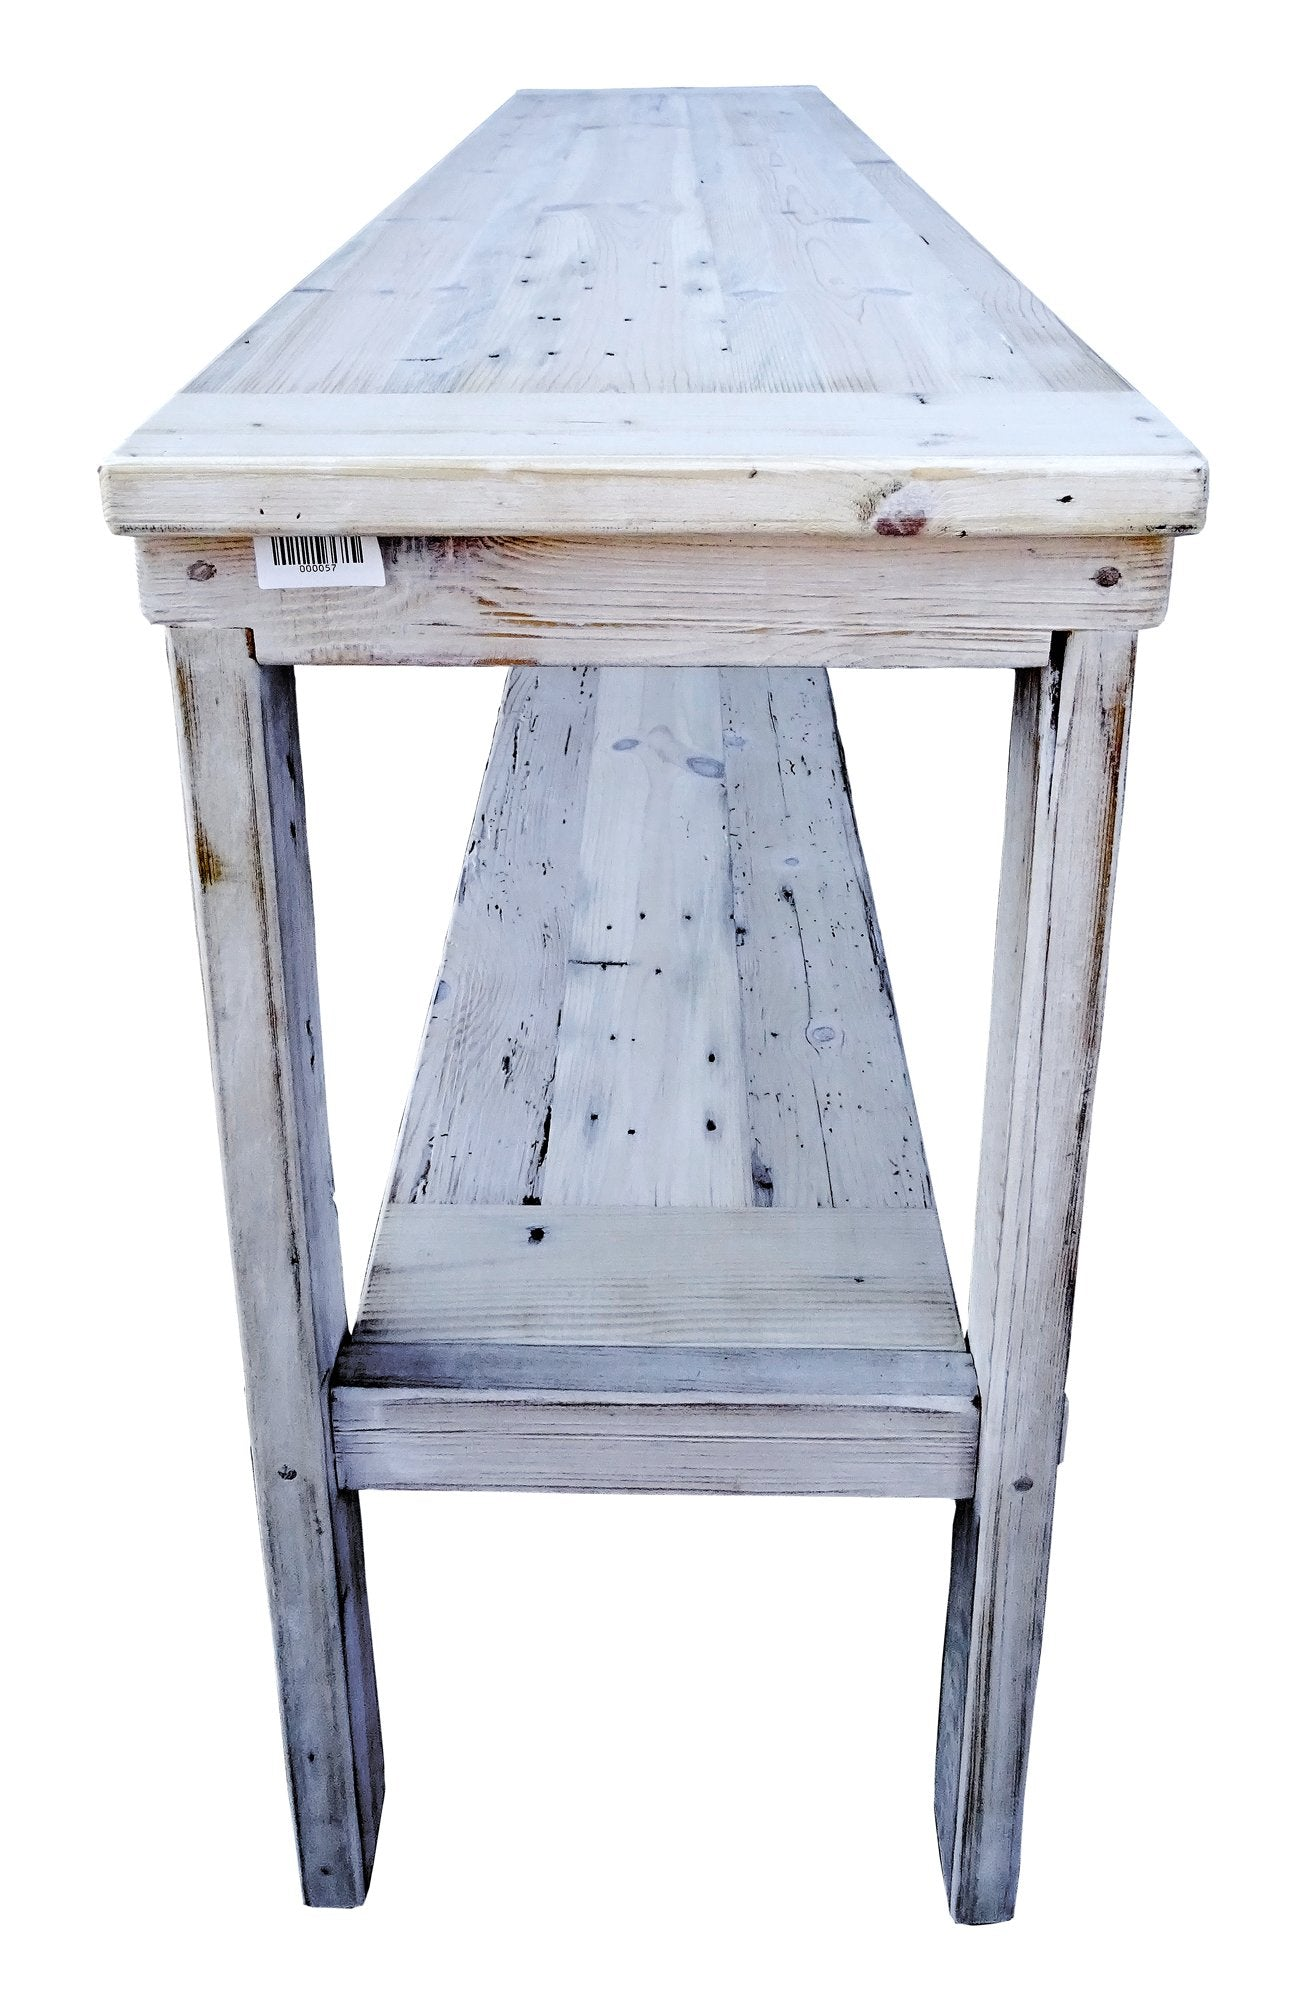 ... Reclaimed Wood Sofa Table Whitewashed Rustic Shabby Shic ...